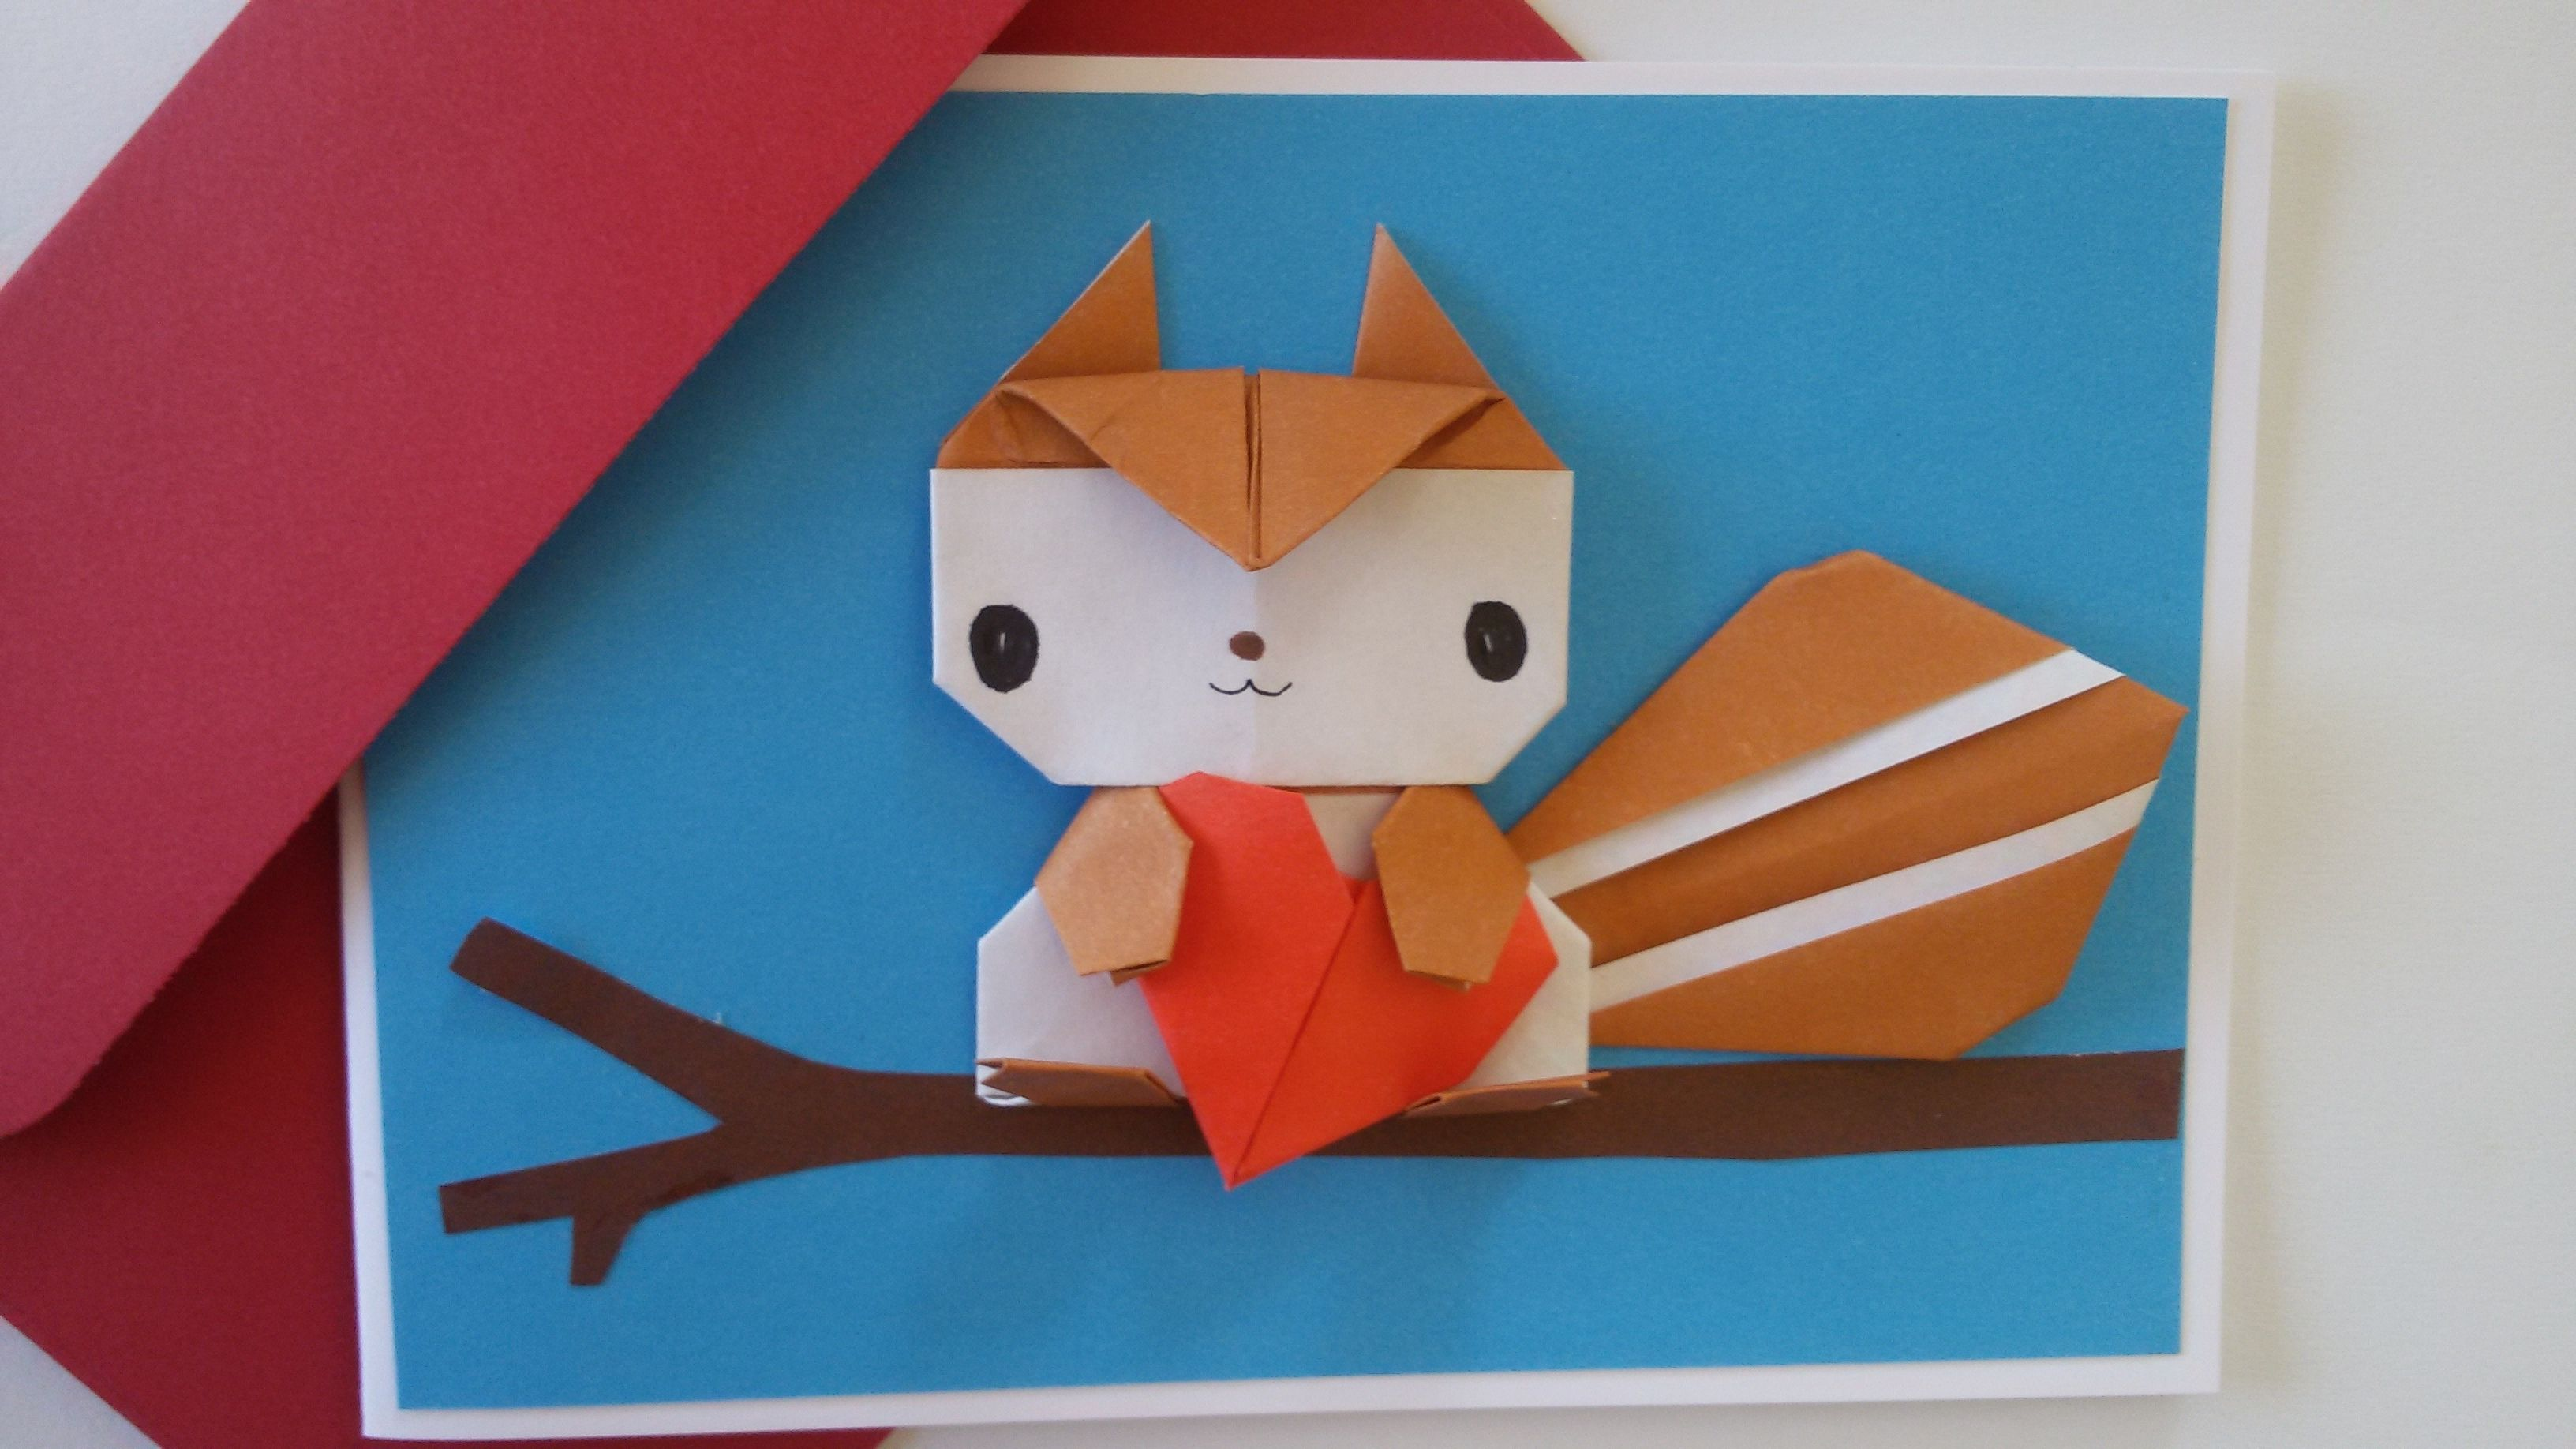 Origami love card by jollycards etsy international sale funny boyfriend birthday origami squirrel pop up blank card handmade paper squirrel card fathers day card girlfriend birthday card jeuxipadfo Image collections